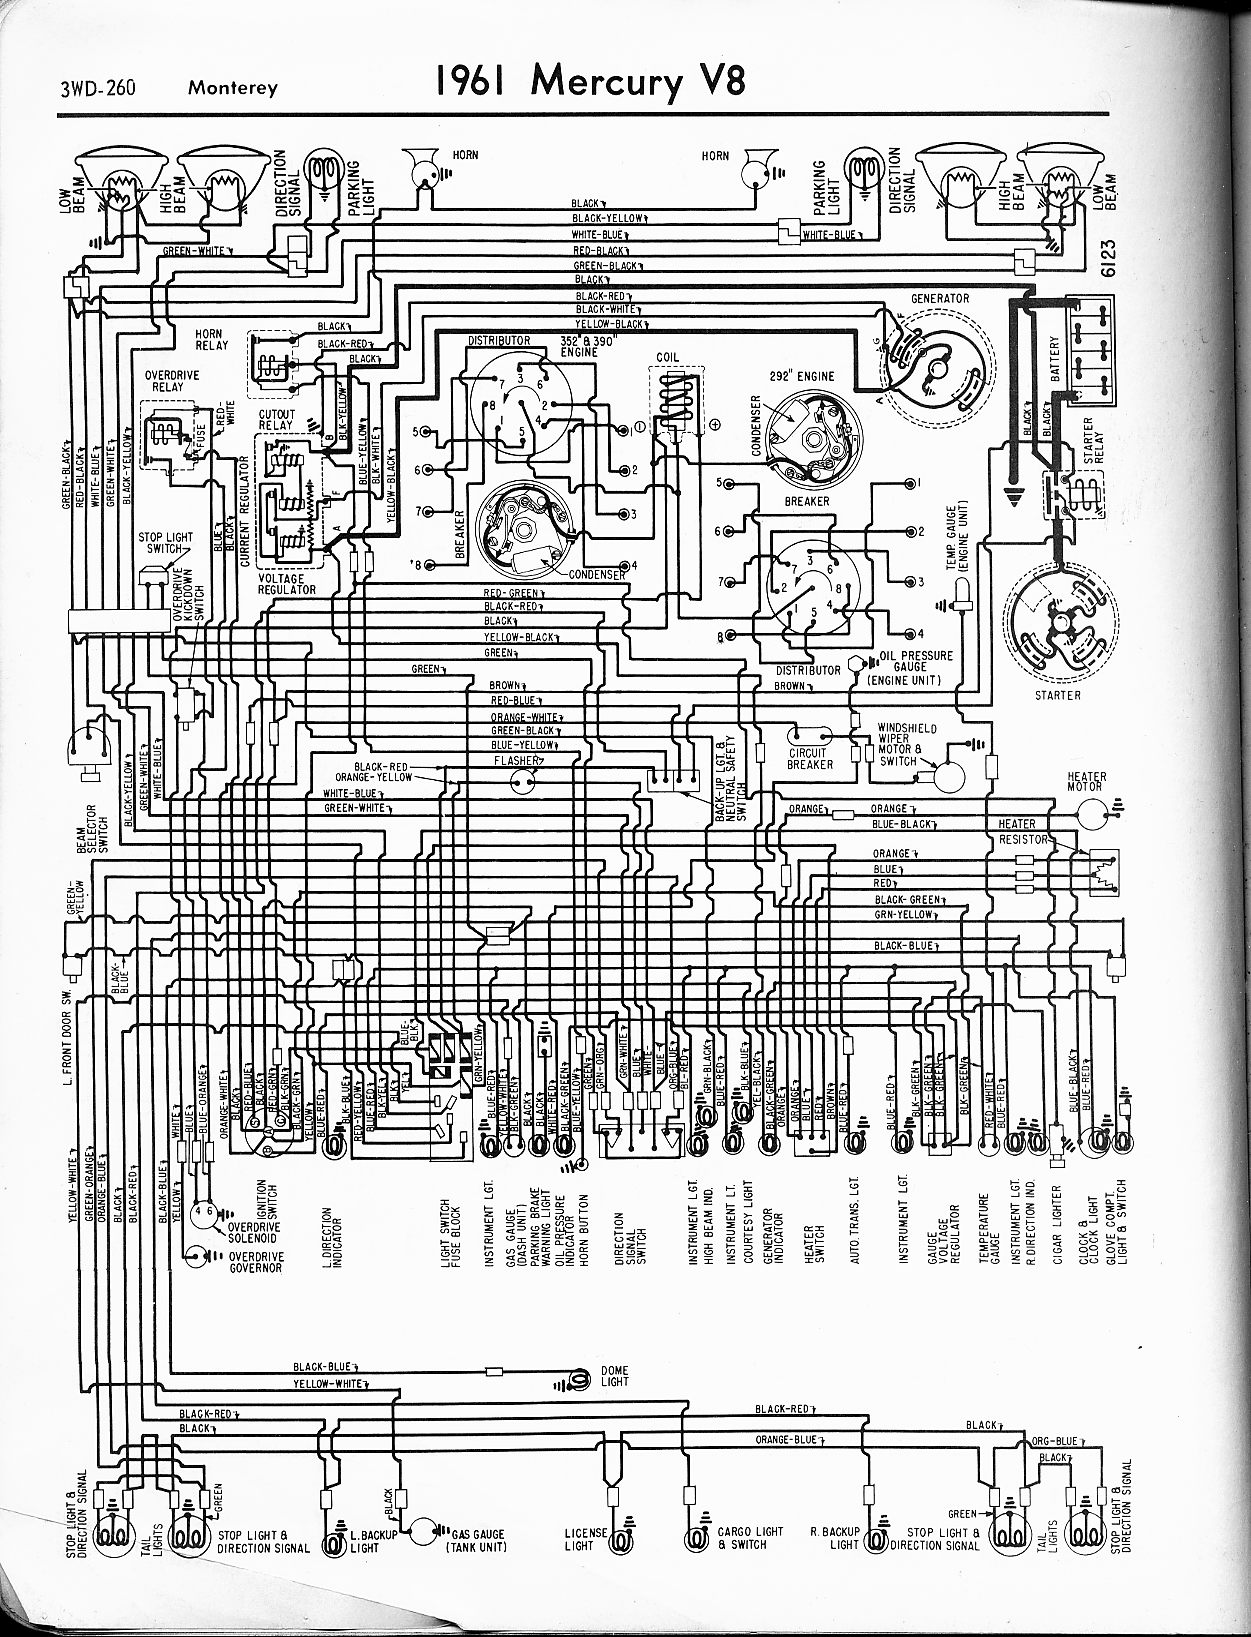 1965 ford falcon wiring diagram vz stereo mercury diagrams the old car manual project 1961 v8 monterey